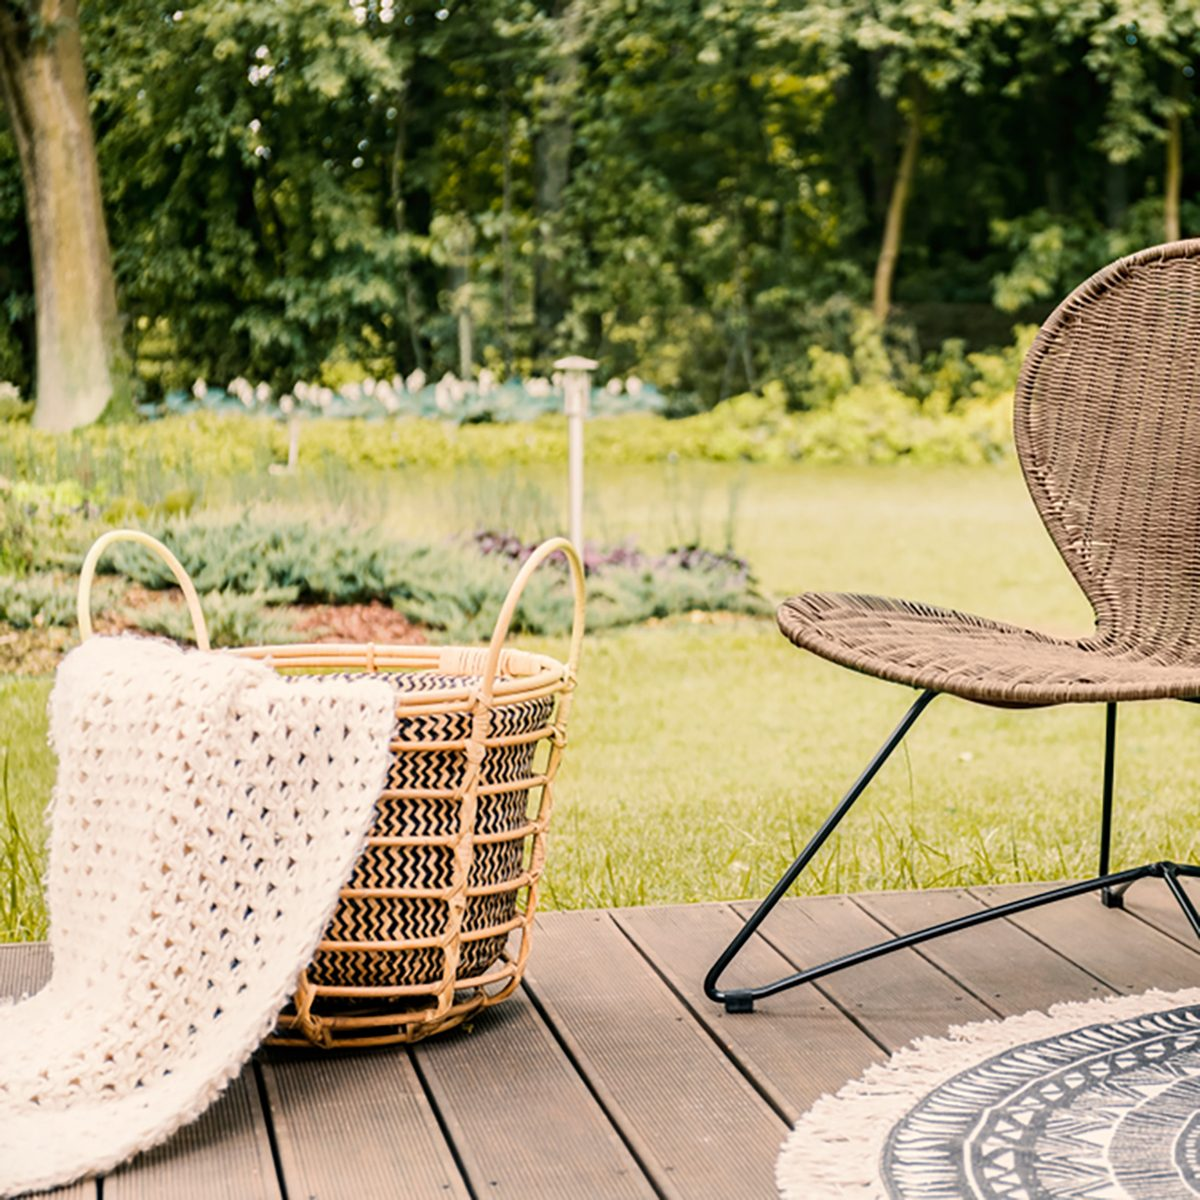 Close-up of a brown garden chair and a beige blanket in a basket on a wooden patio in the yard